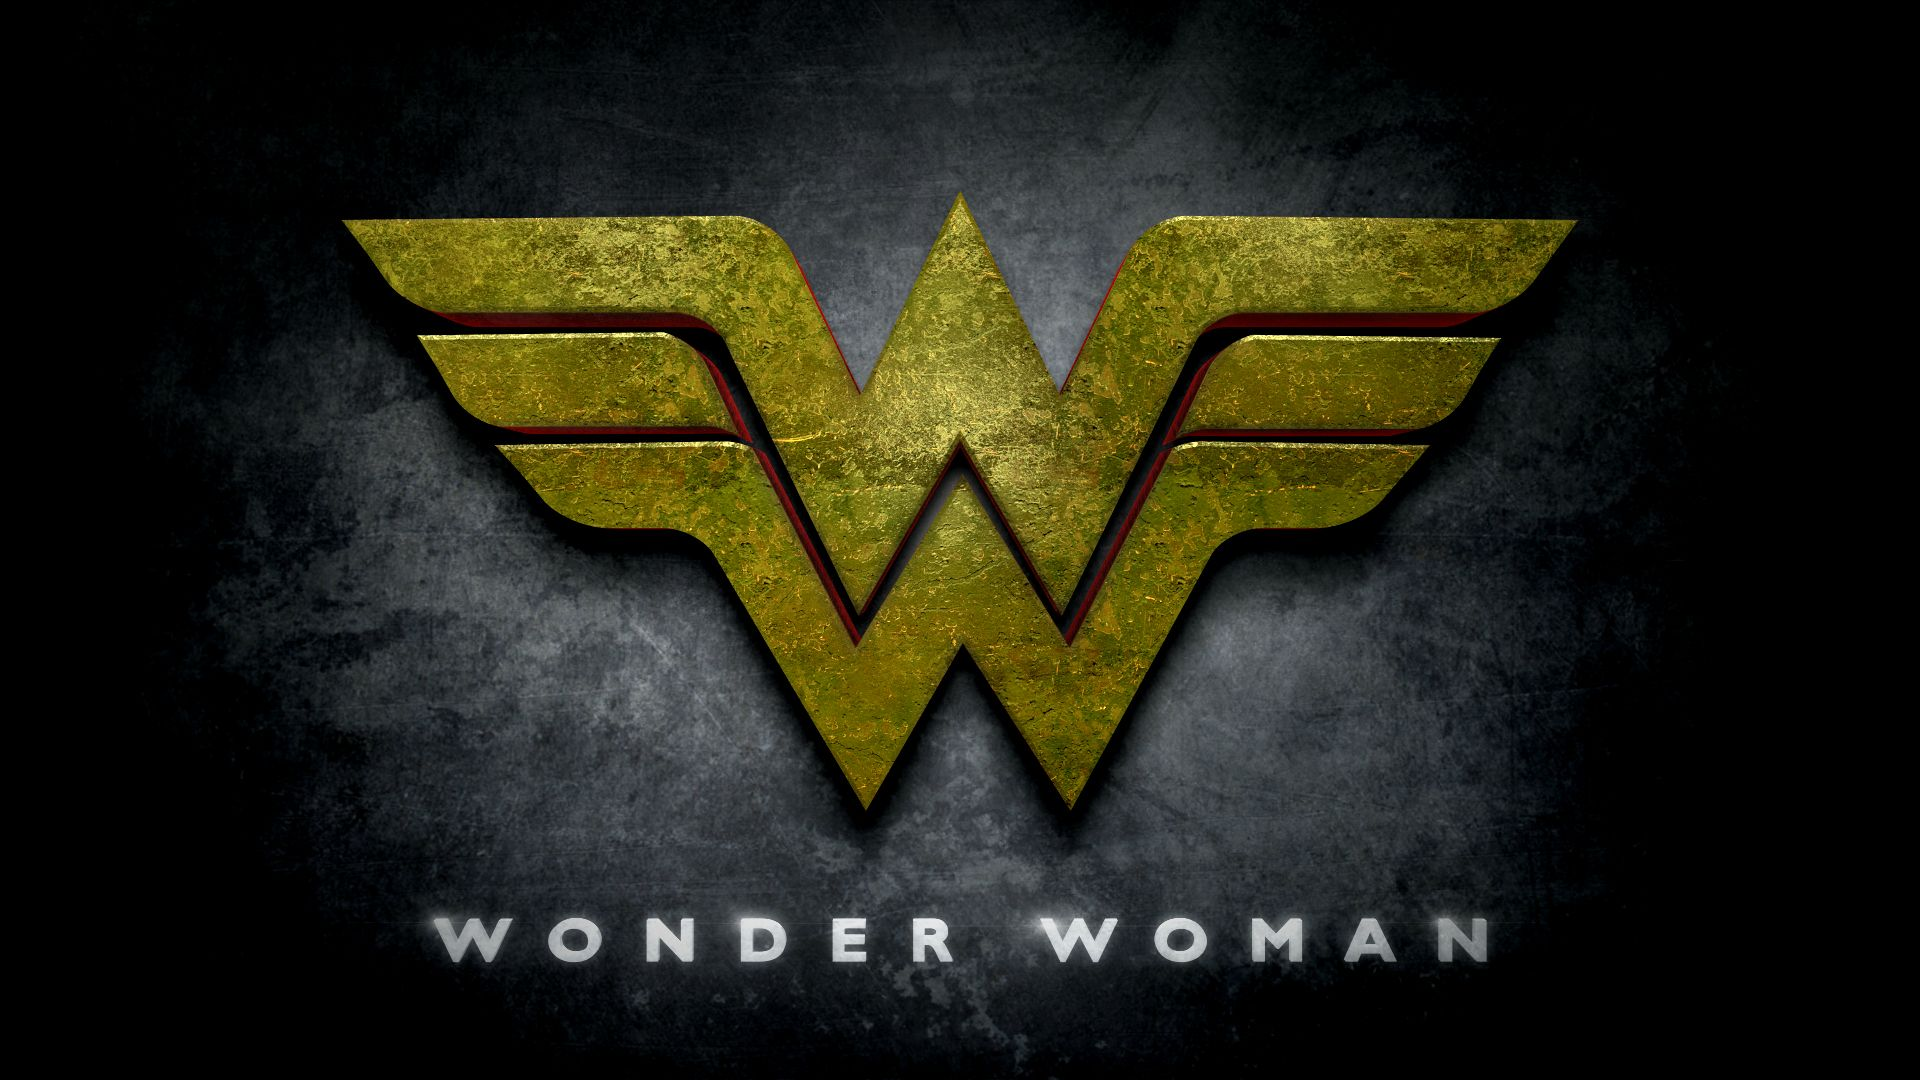 Wonder Woman Logo http://www.dailyplanet.cl/logos-tipo-man-of-steel-para-justice-league/wonder-woman-logo/